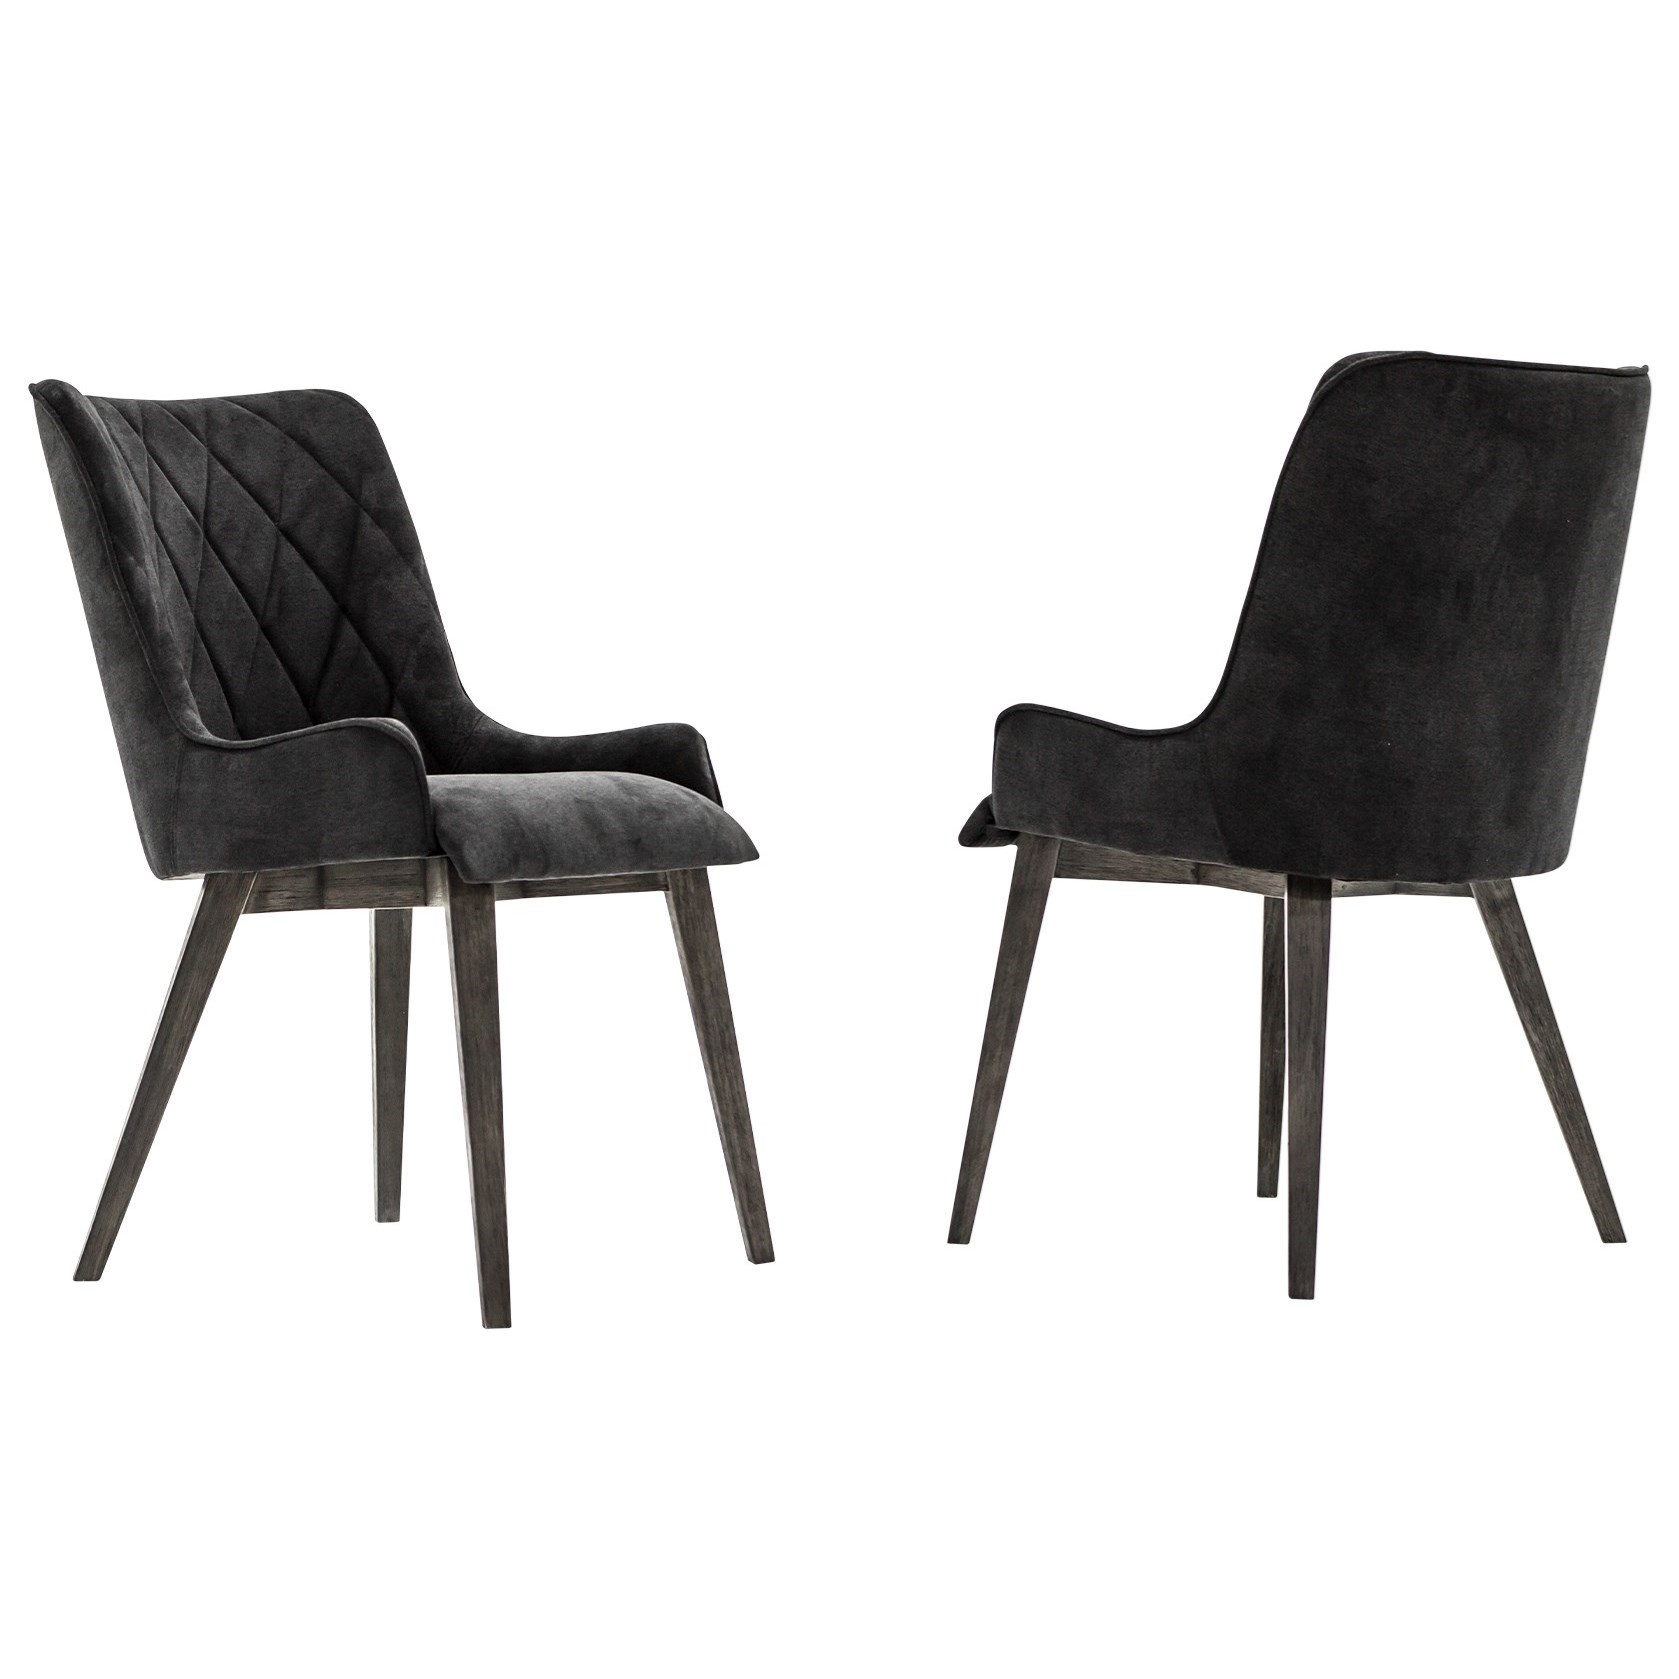 Midnight Upholstered Dining Chair Set